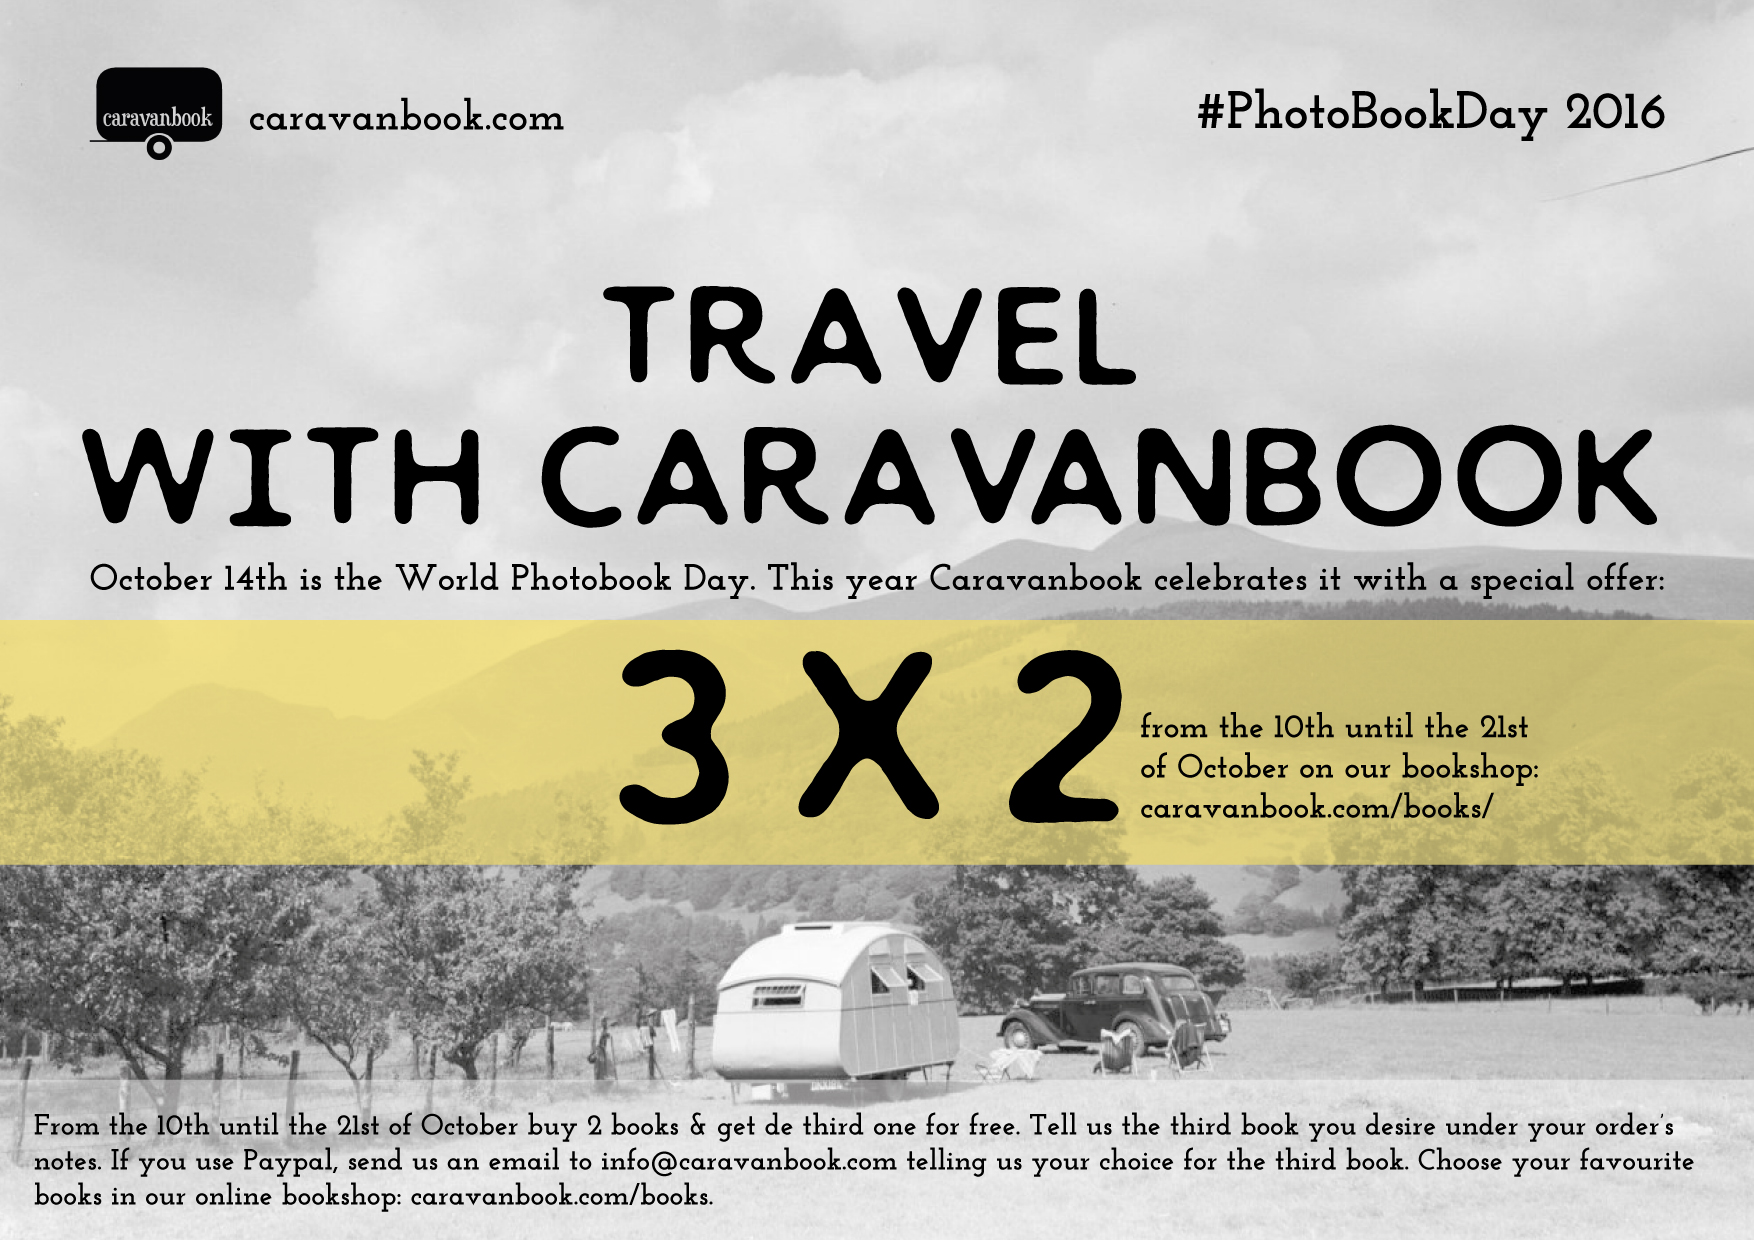 Caravanbook celebrates the World #PhotoBookDay 2016 with a special offer: 3 books per 2 on their online bookshop.